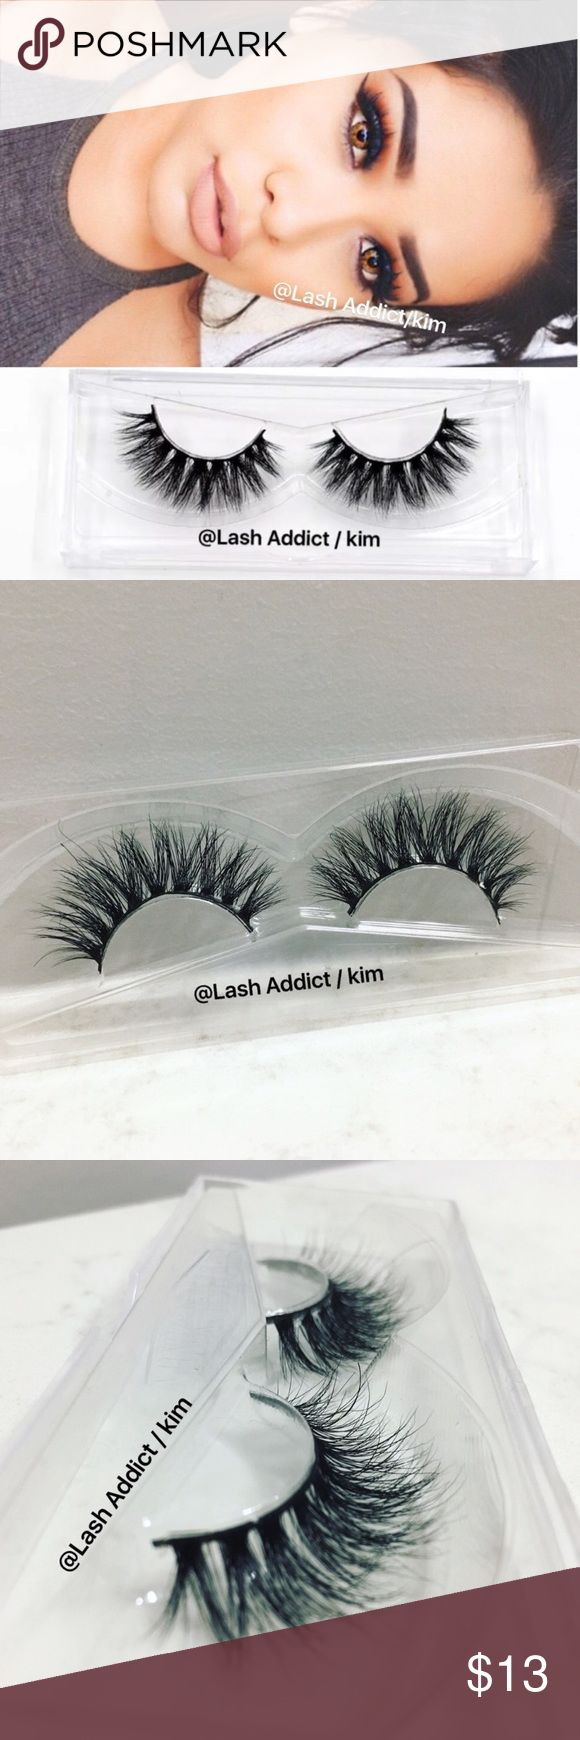 Mink lashes mink eyelashes lilly lashes velour new ❤ READ,  before purchasing ❤  LashAddict / Kim   Brand New  Flutter Lashes ✨ Dupe for Lilly Lashes Mykonos / Miami ✨  PRICE IS FIRM + ADD GLUE $3  •100% Real Mink Fur Strip Lashes •High Quality Lashes •Will last up to 25 applications, handle with care. •All pictures are mine •Cotton Band  No glue Makeup False Eyelashes